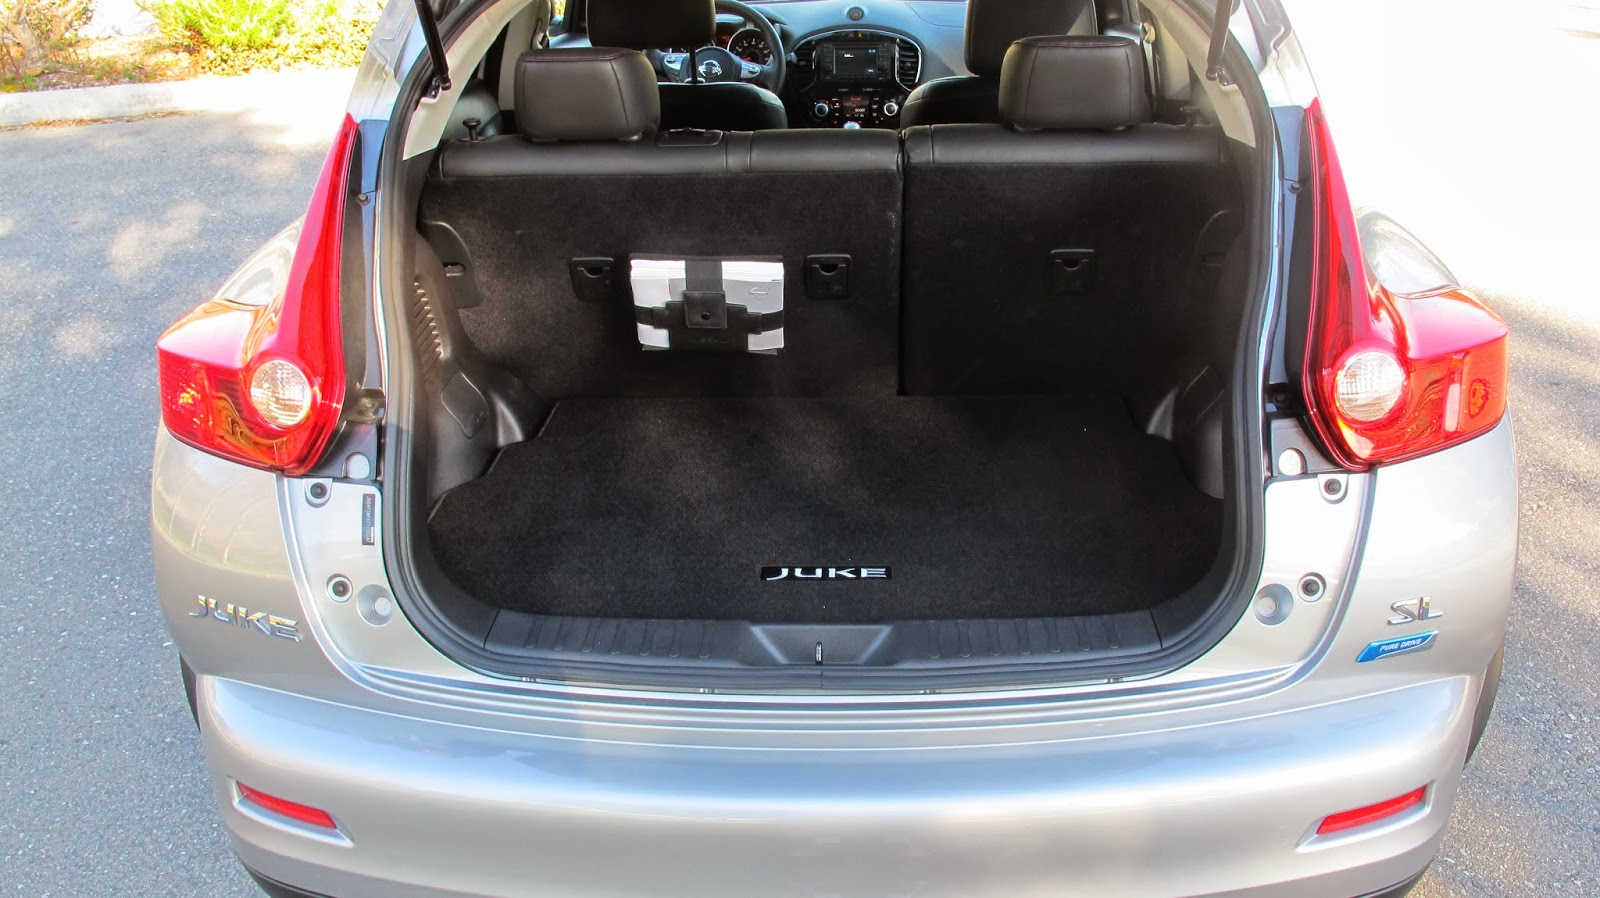 2014 large suv cargo space comparison autos post - Small suv cargo space comparison collection ...